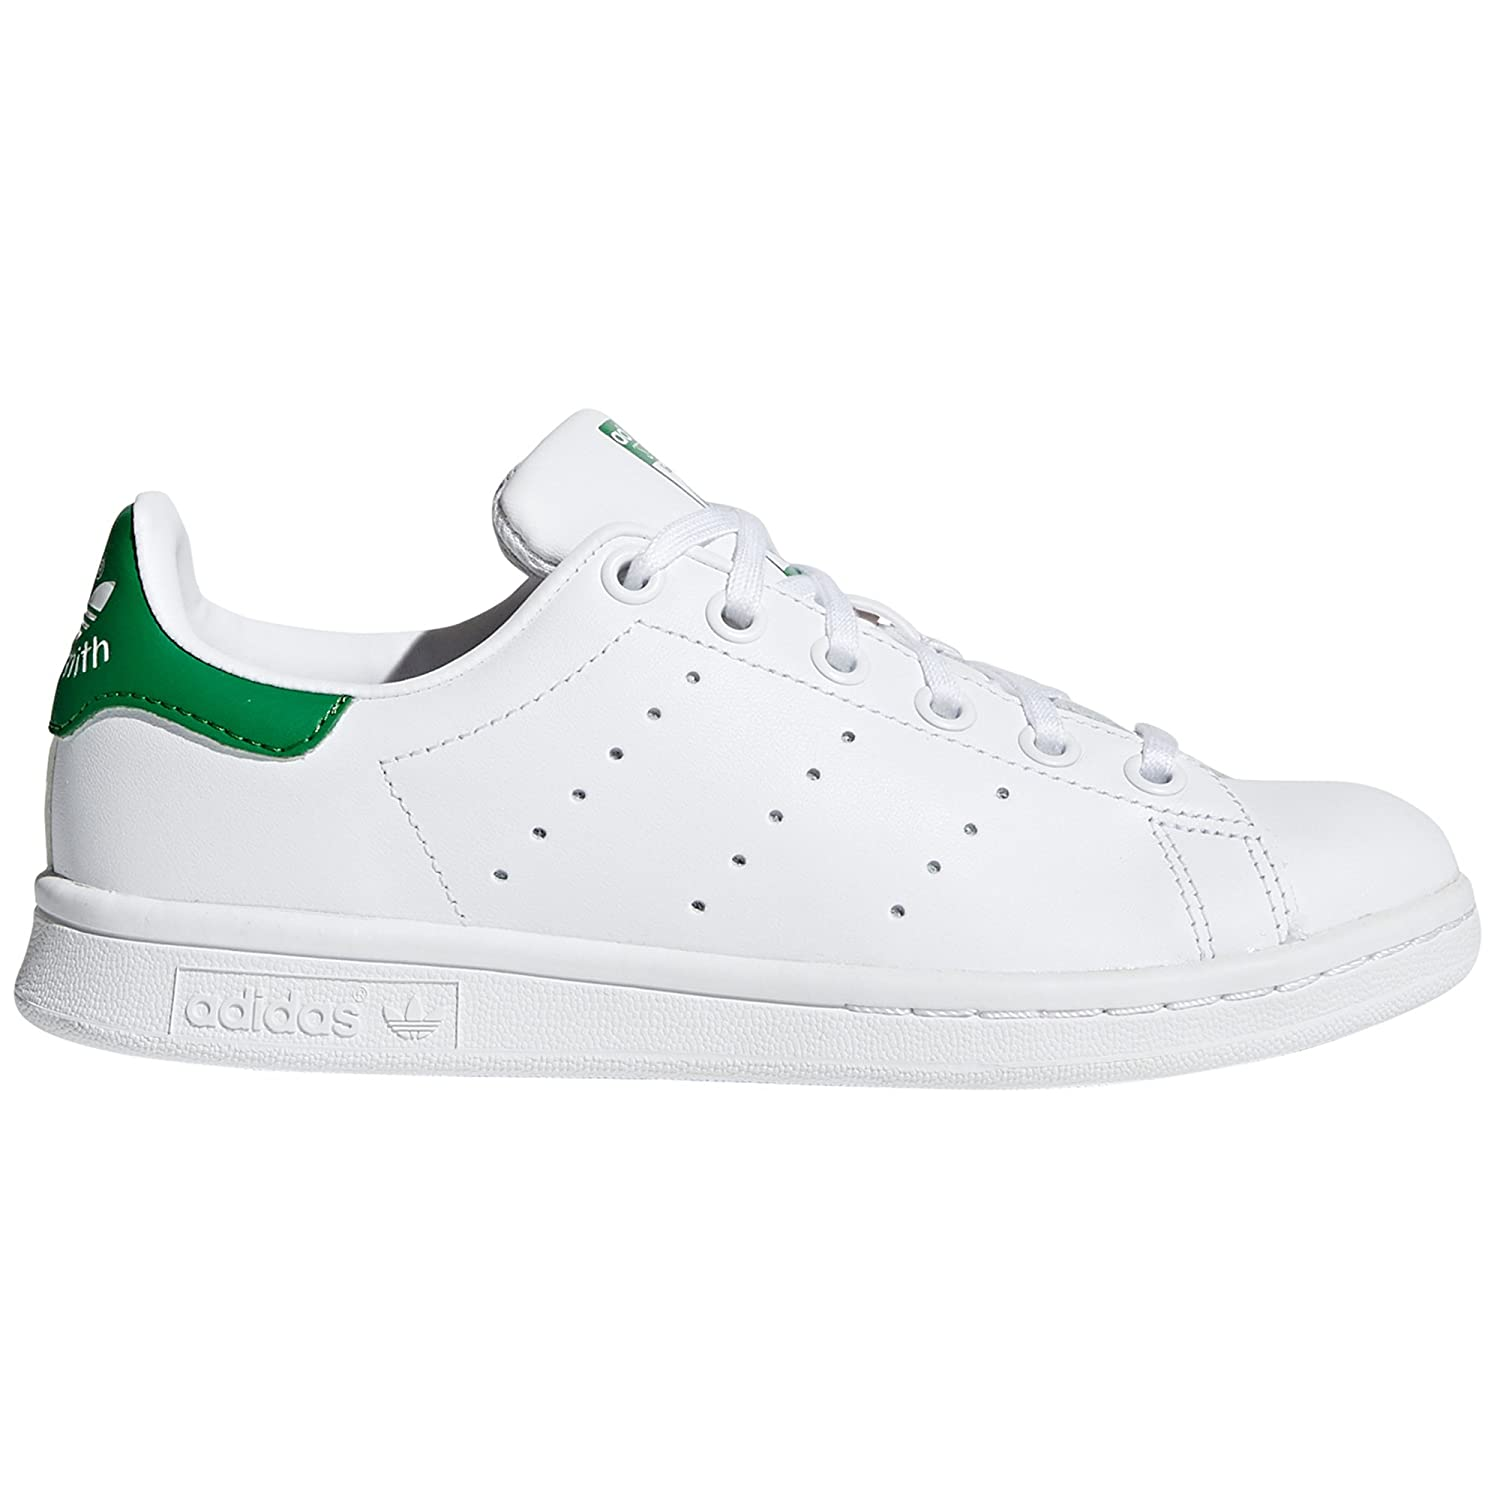 Adidas Stan Smith, Basket Femme. Sneakers. STAN SMITH M20324